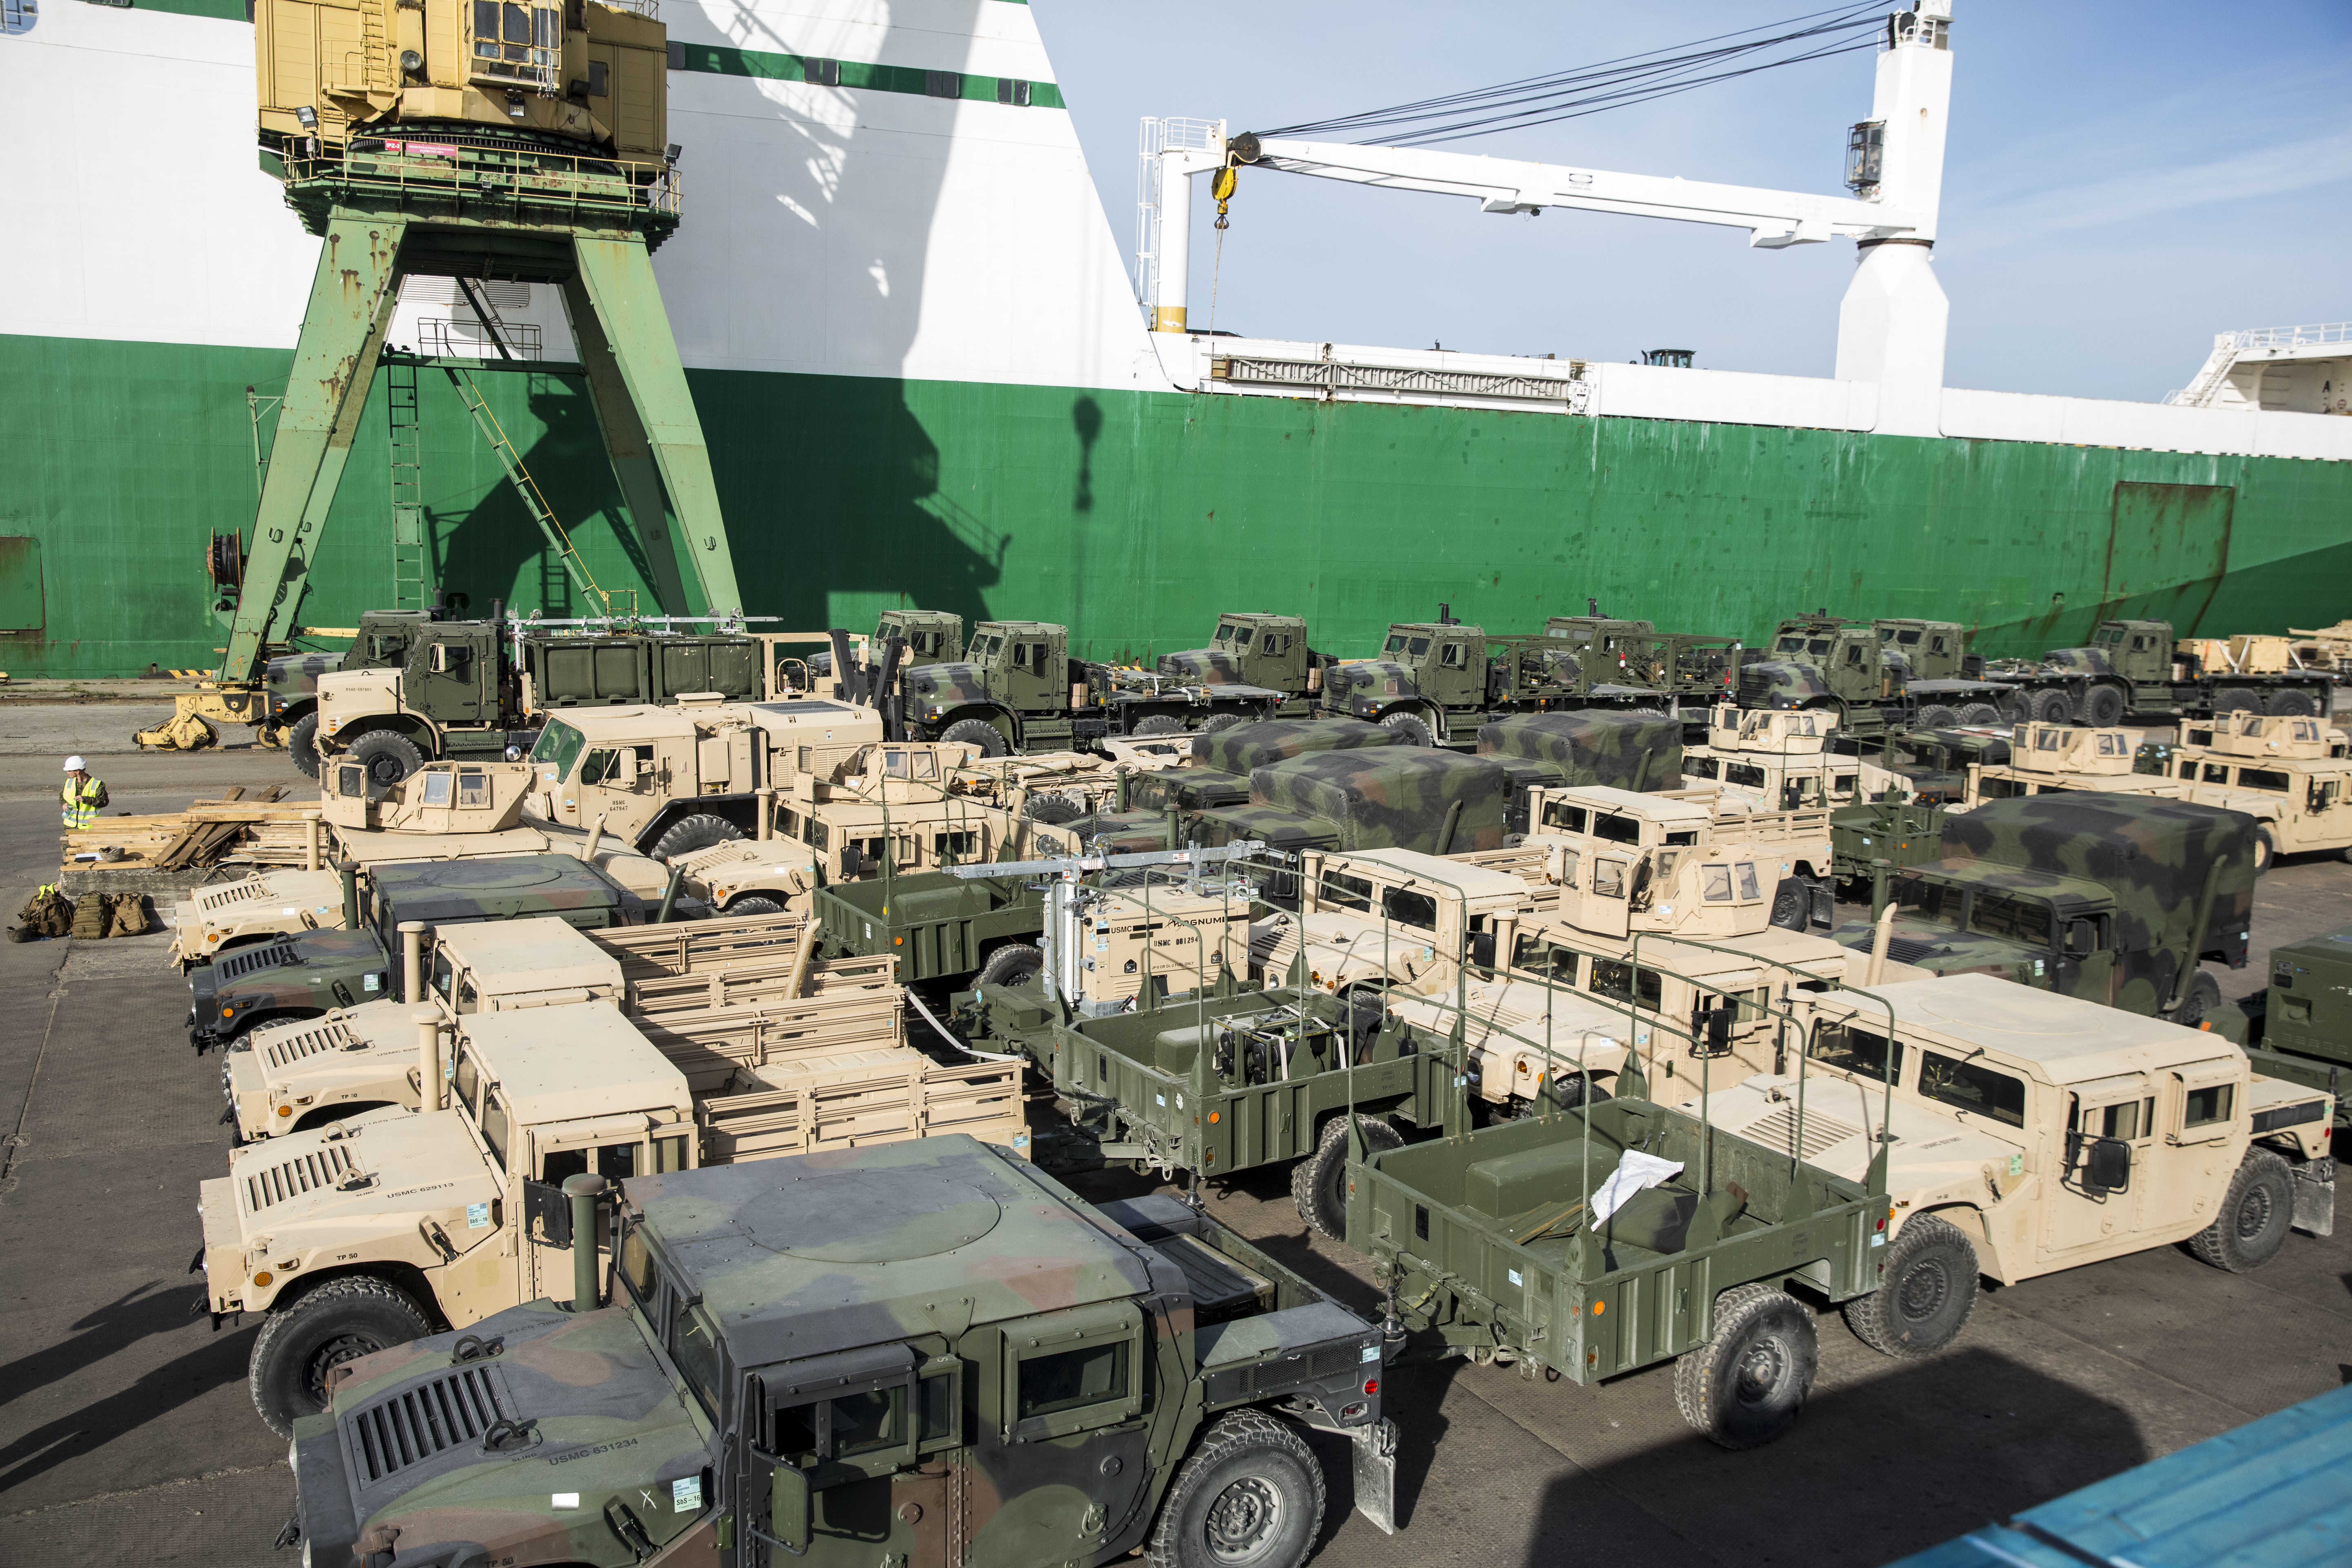 A fleet of military vehicles wait pier side in preparation of Exercise Saber Strike 16 in Riga, Latvia, June 4, 2016. The vehicles were transported by a British Roll-On, Roll-Off ship from Norway for the exercise. US Marine Corps photo.